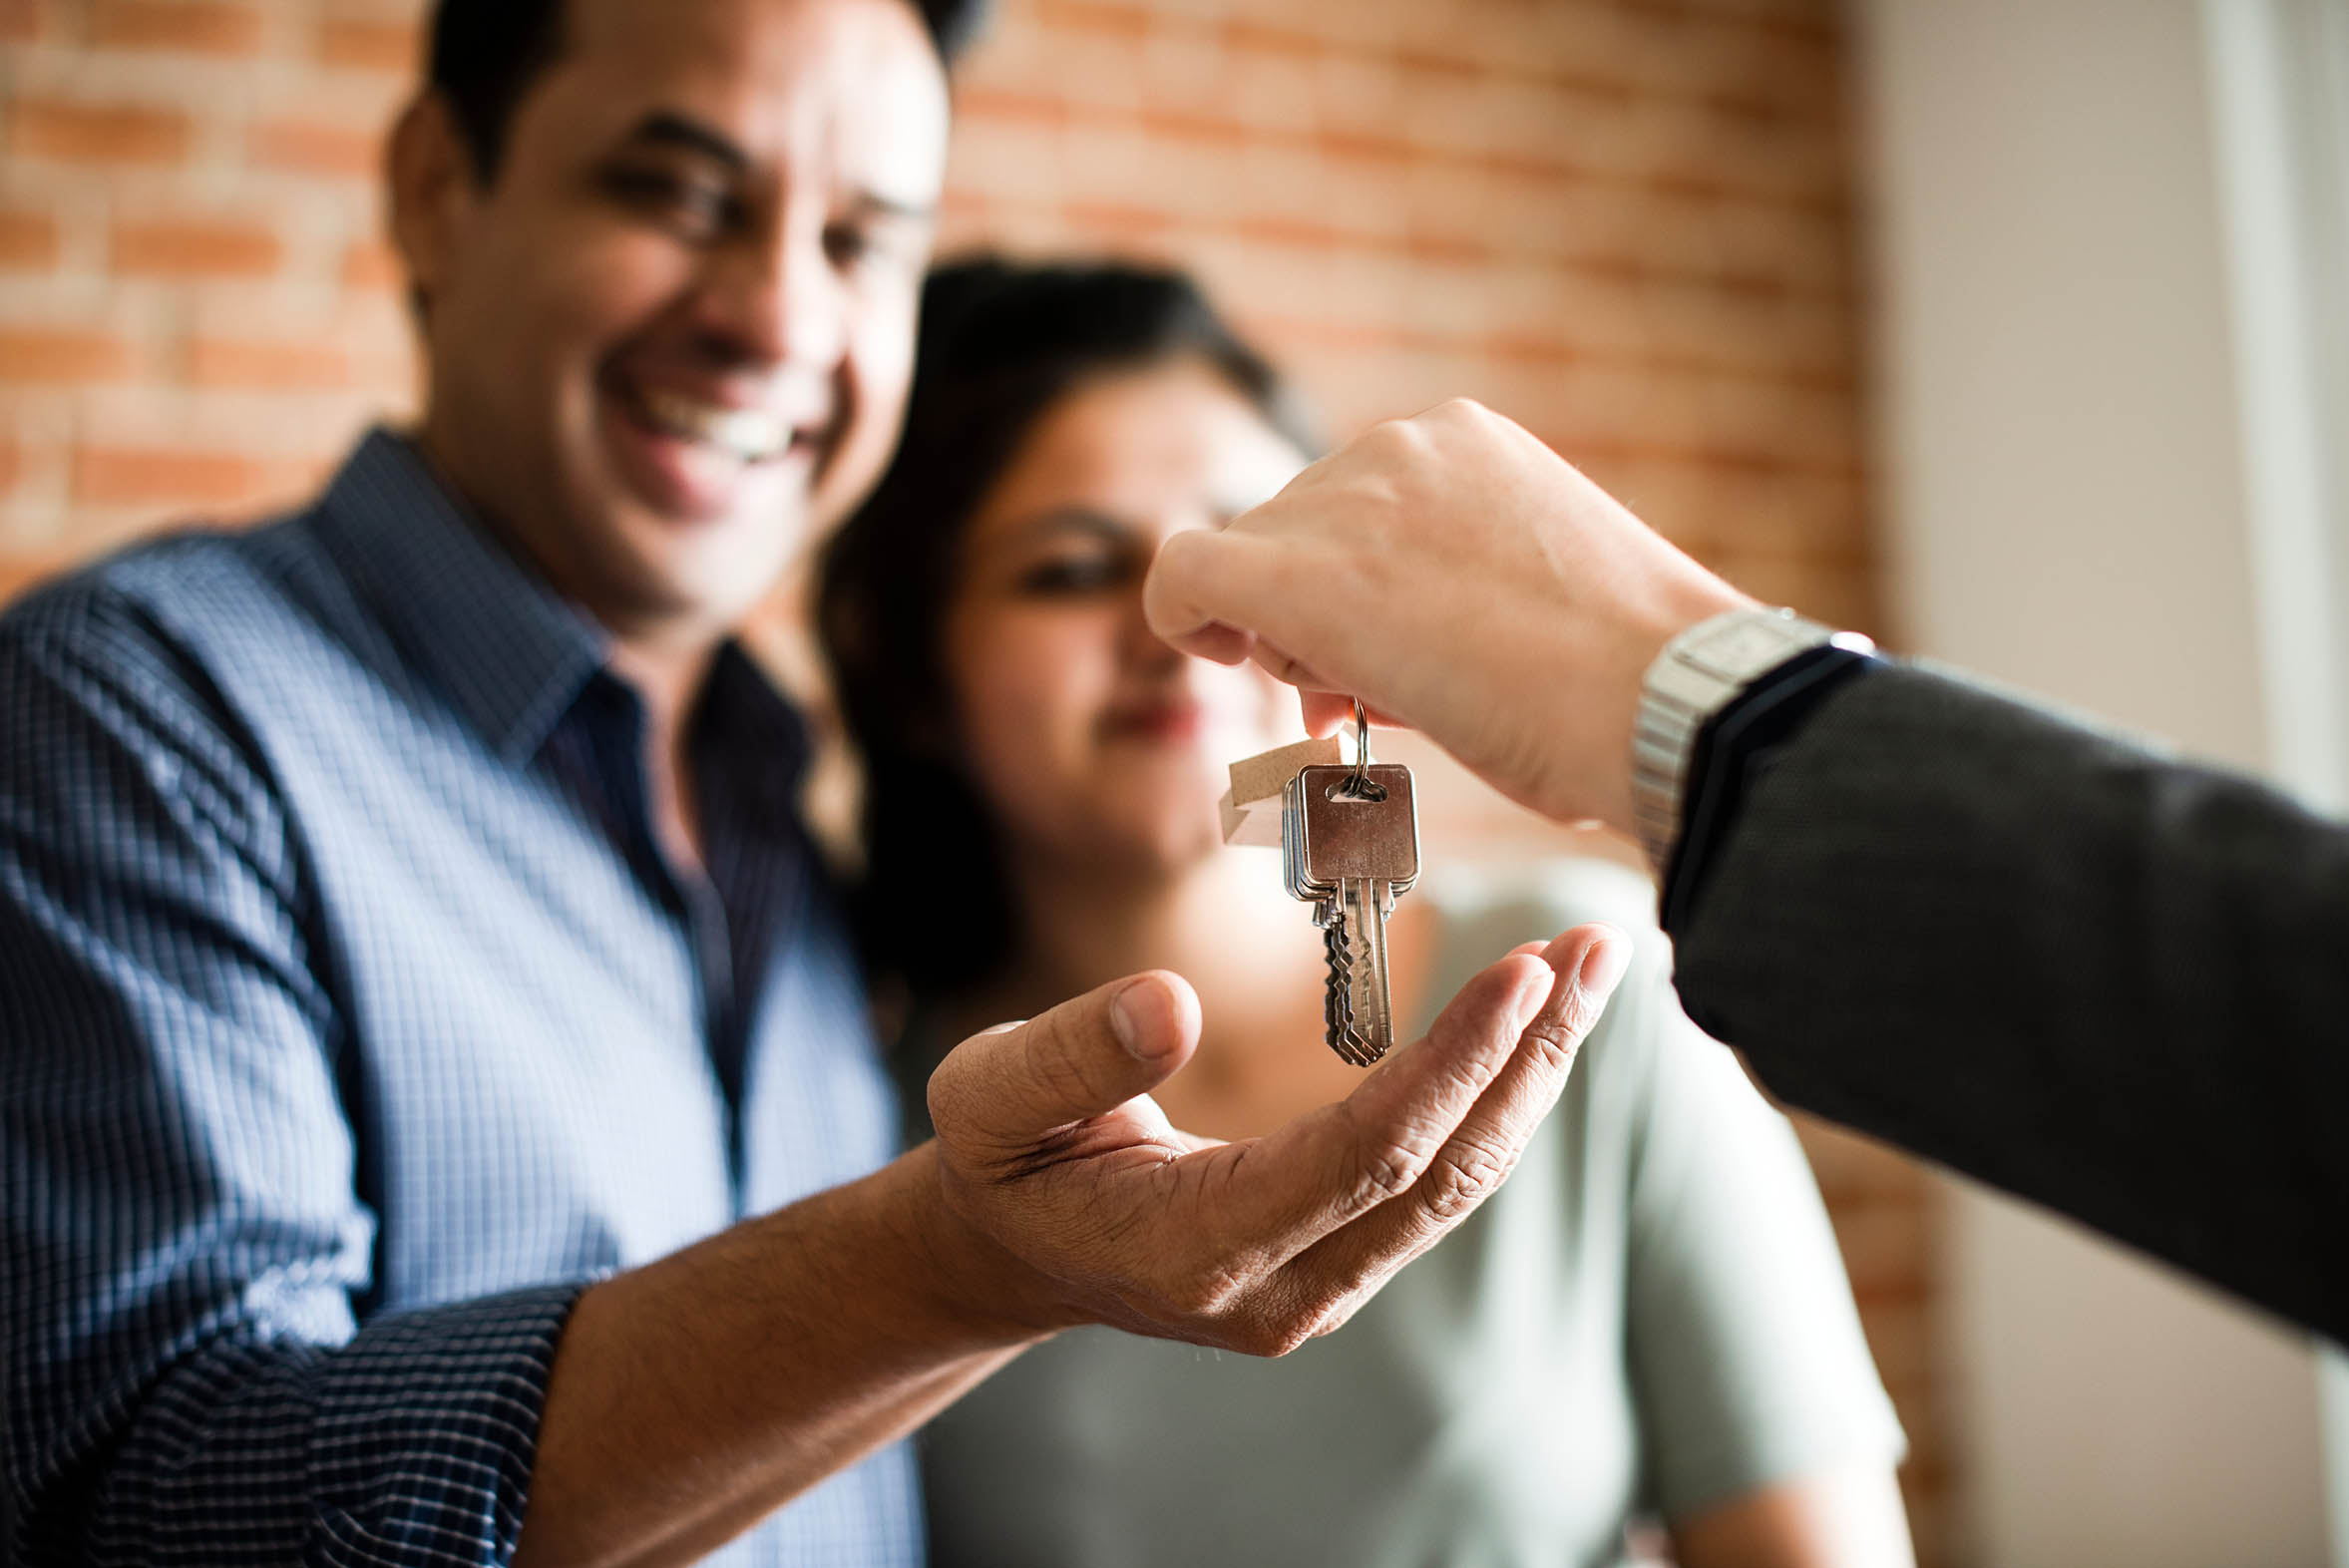 A picture of a smiling man and woman recieving keys from another person